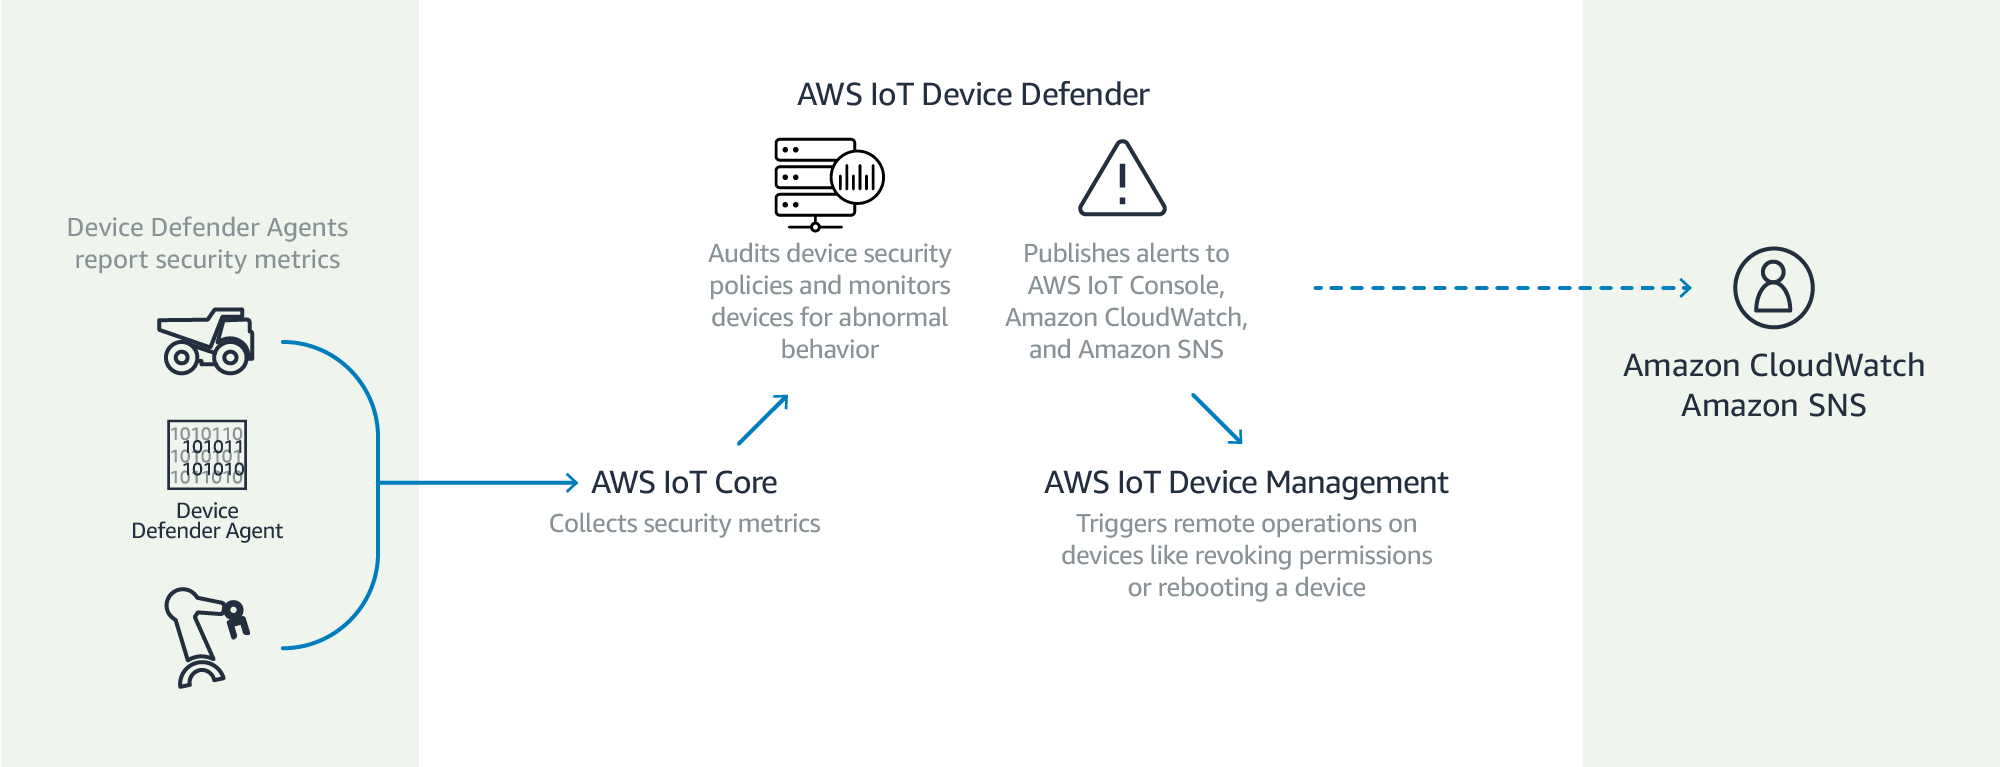 Funktionsweise – AWS IoT Device Defender